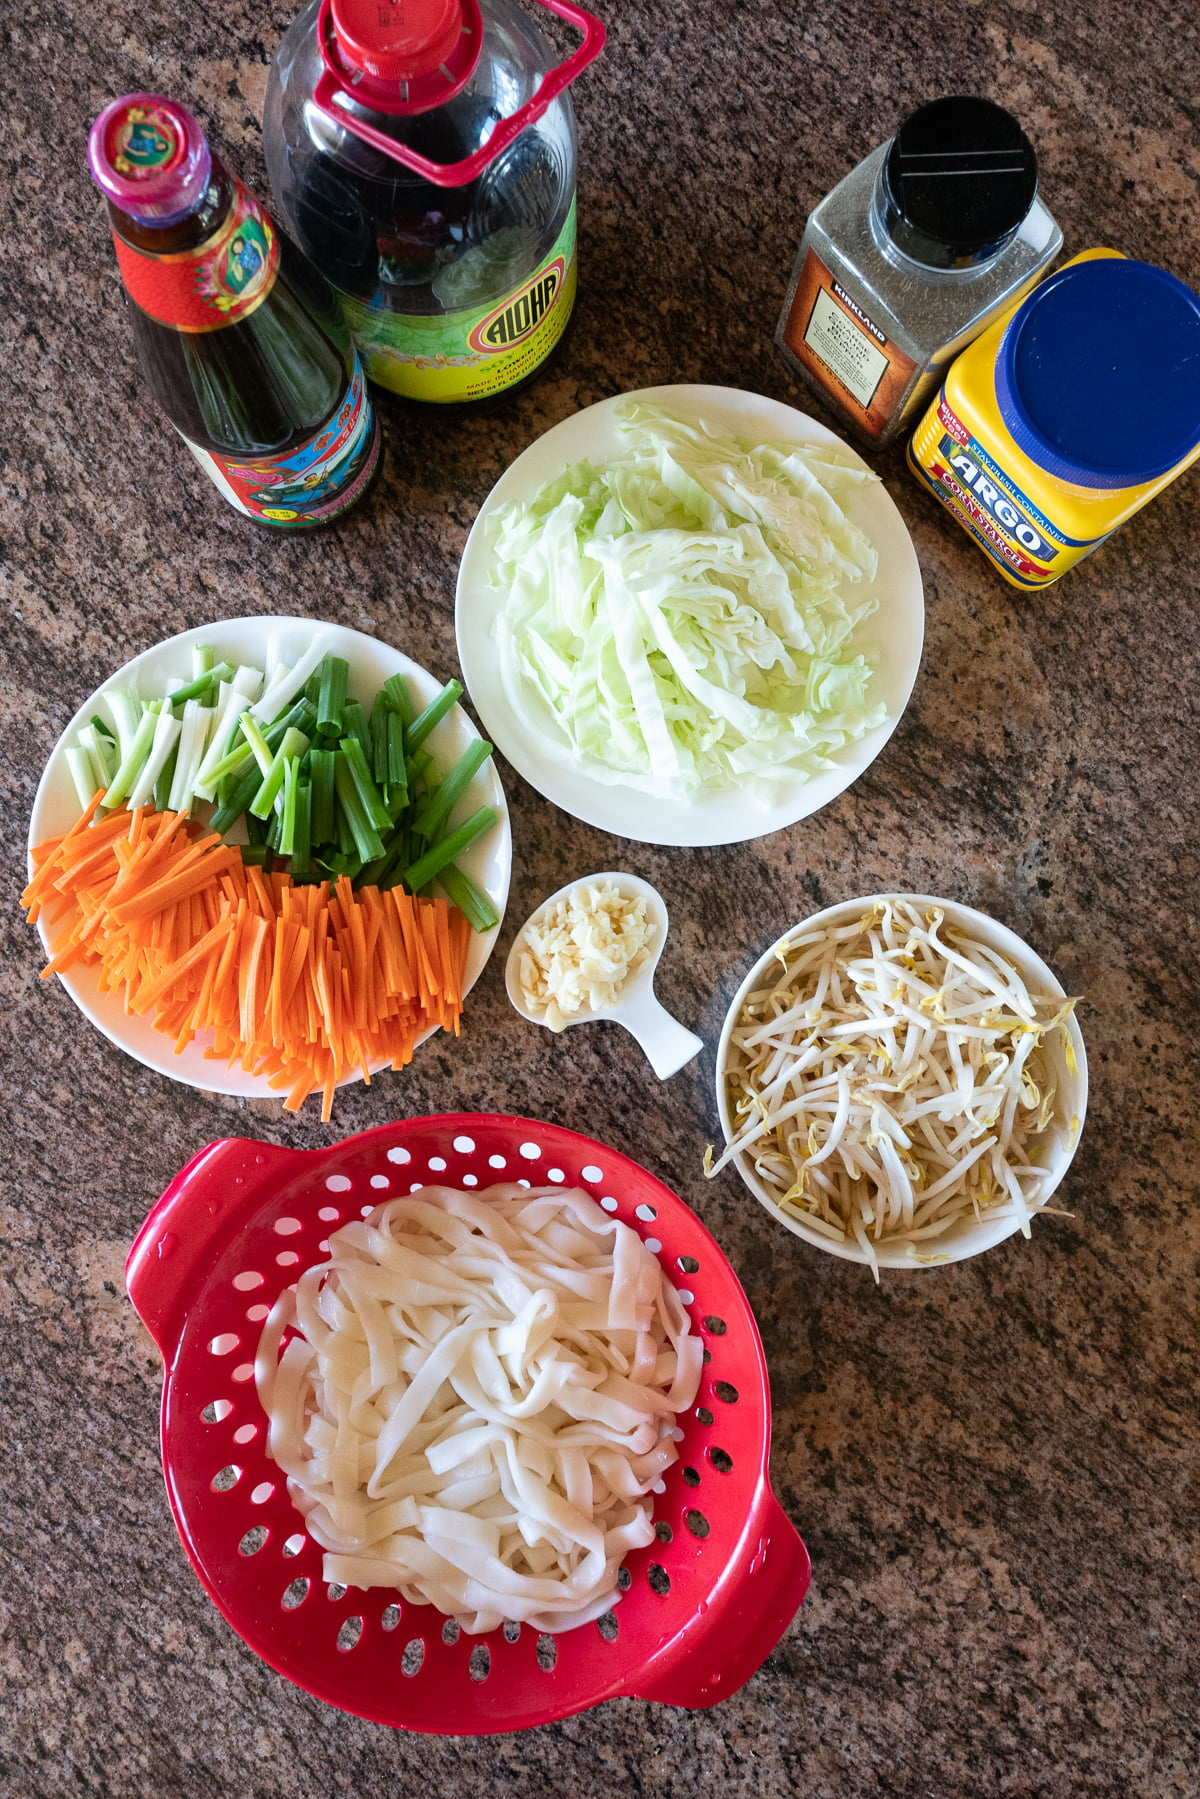 Ingredients for Chow Fun: chow fun noodles, carrots, green onions, mung bean sprouts, cabbage, garlic. Soy sauce, oyster sauce, cornstarch, and black pepper.